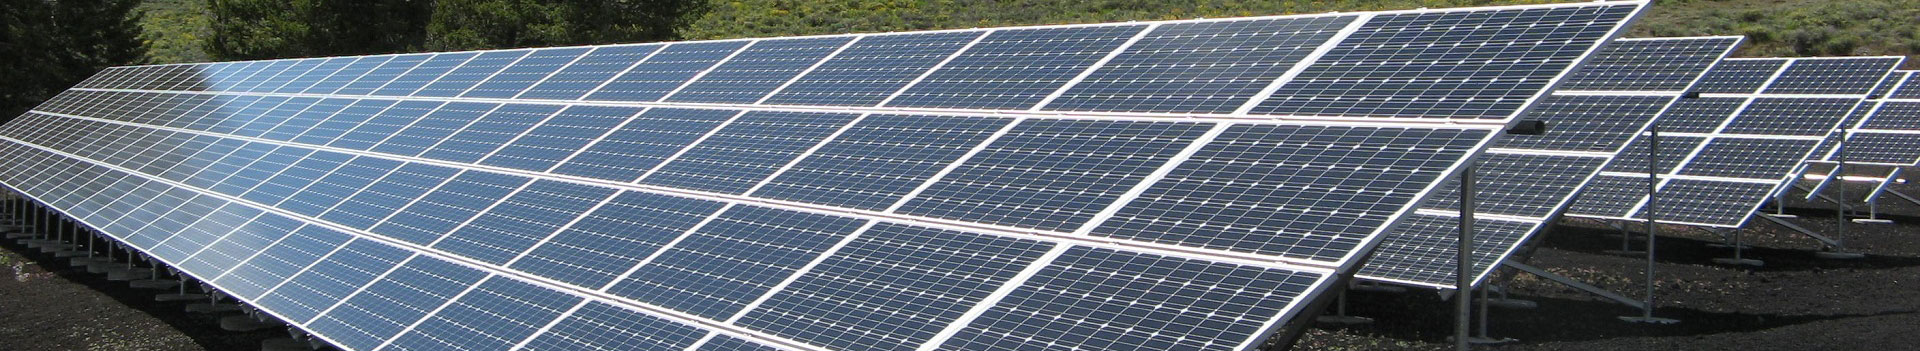 Contact for Solar Rooftop System